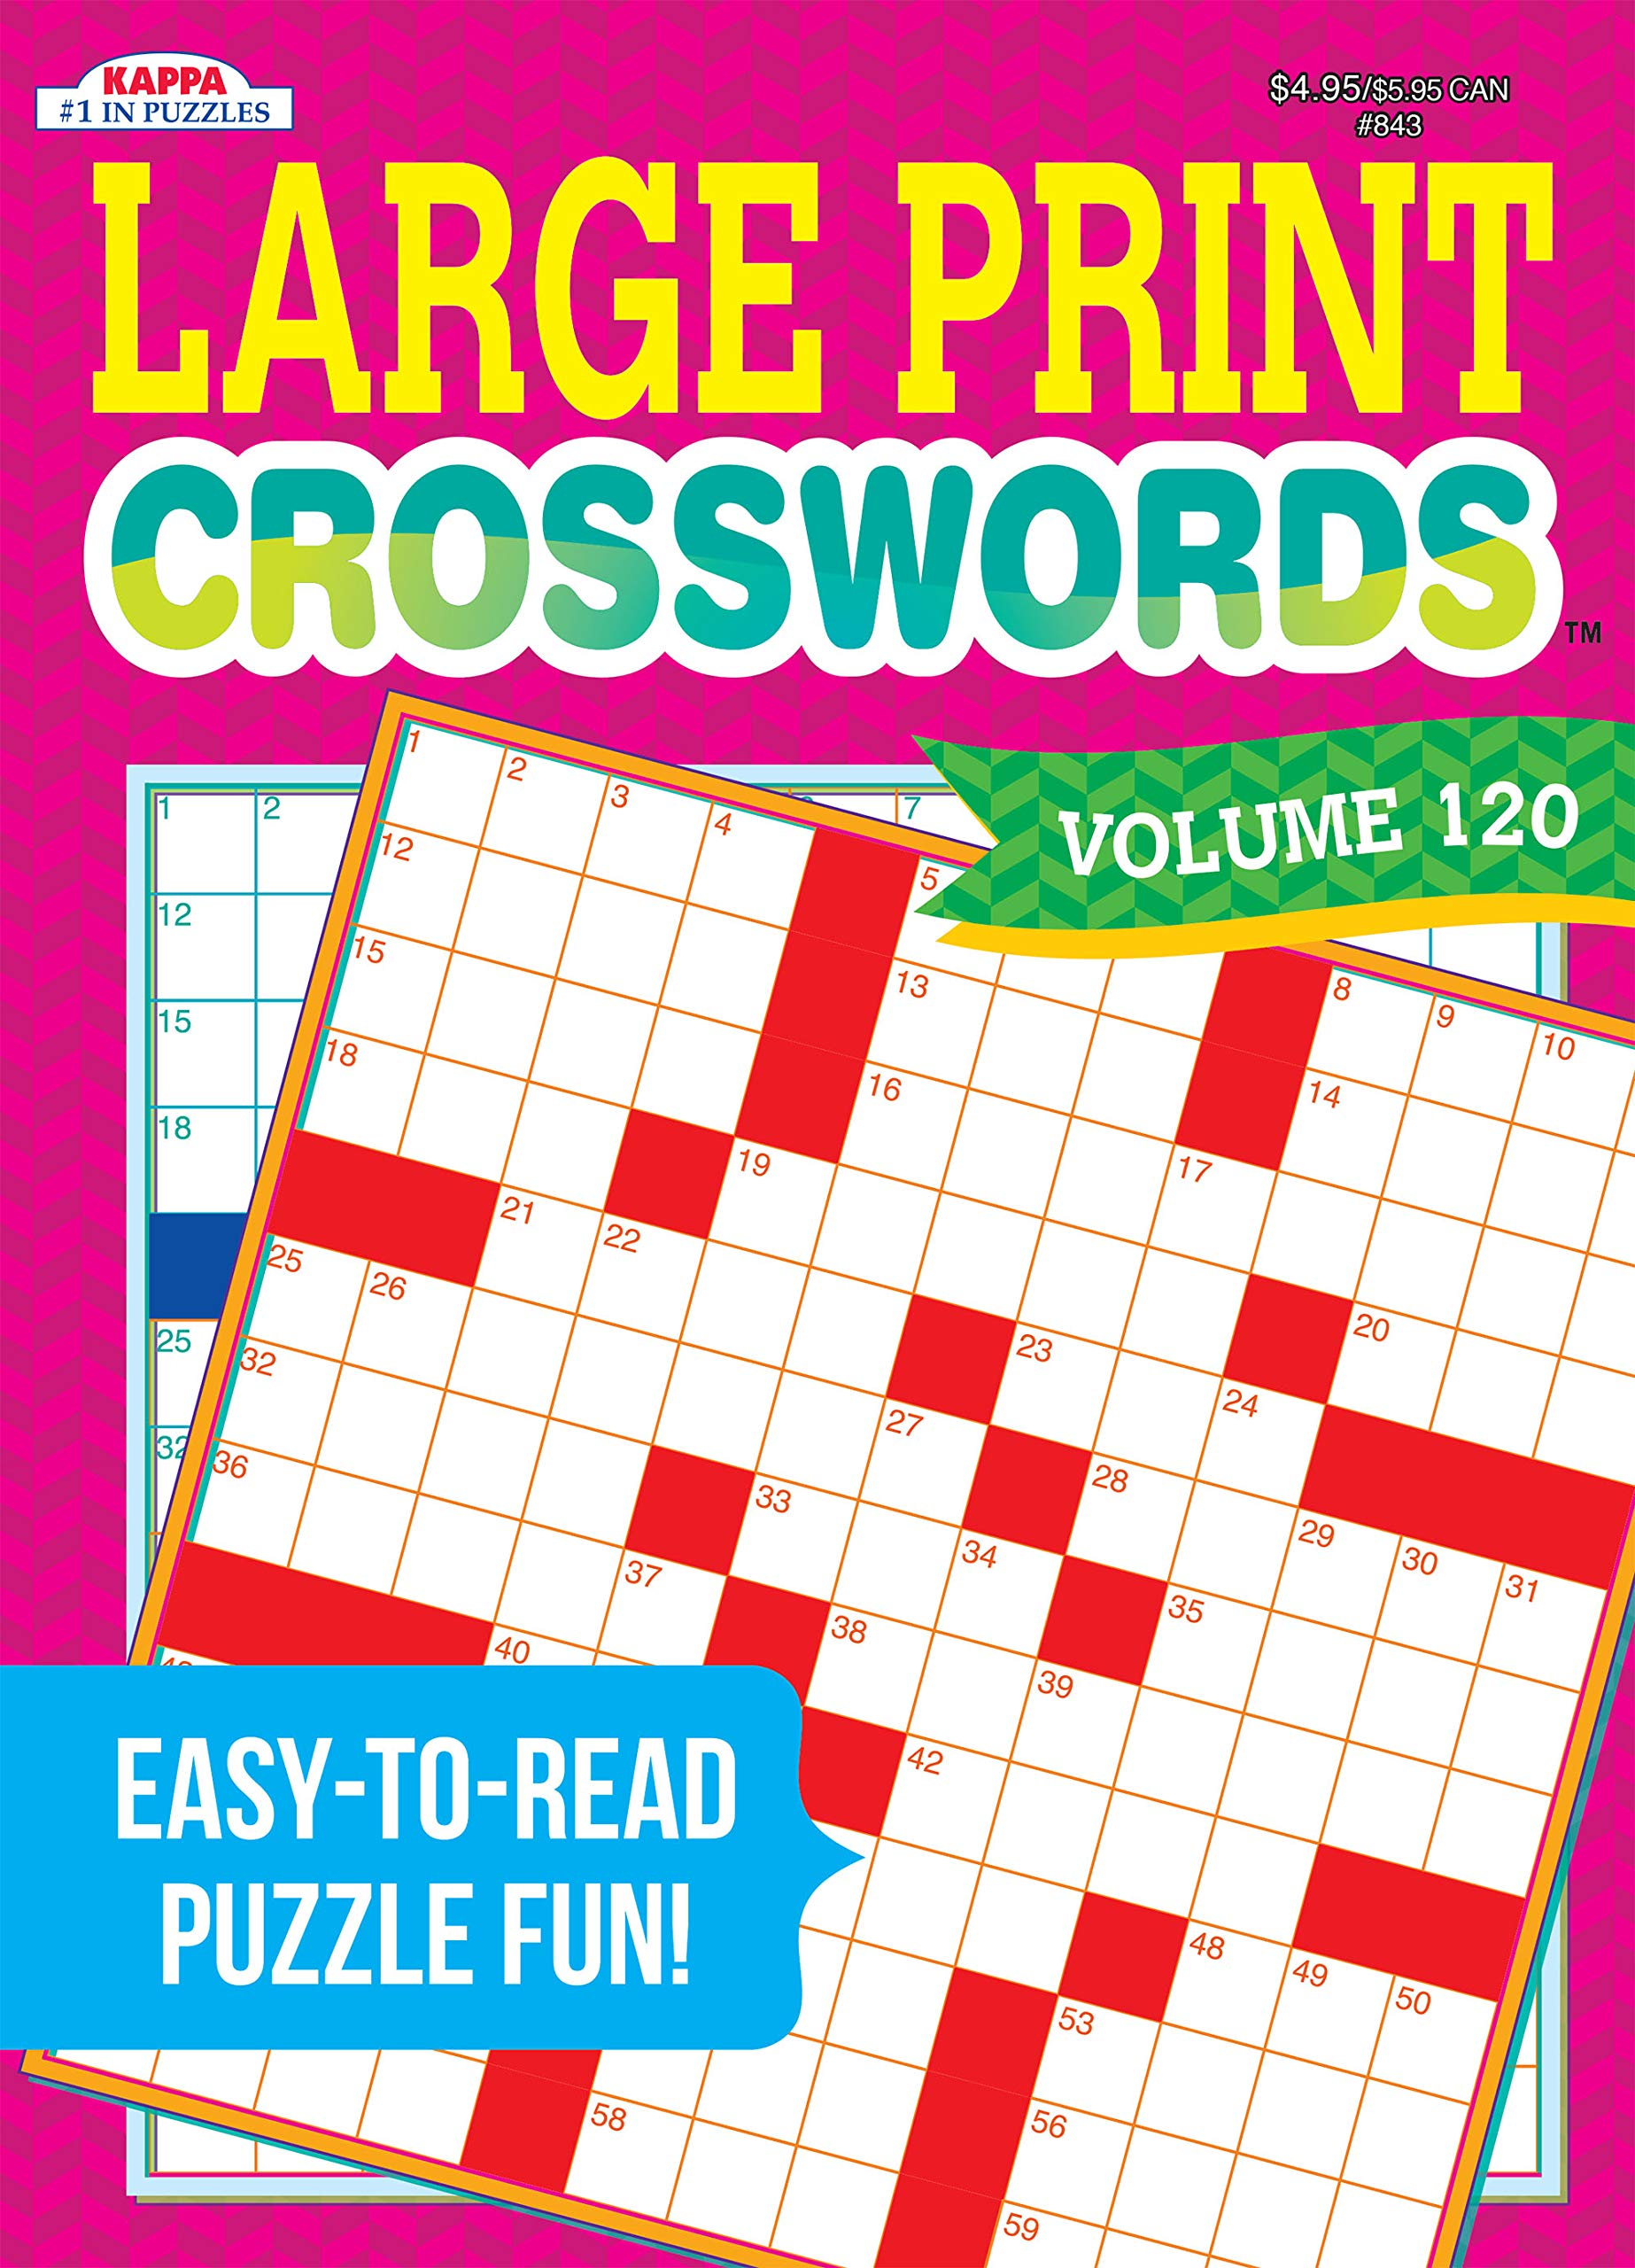 Large Print Crosswords Puzzle Book Volume 120 Kappa Books Publishers 9781559931908 Amazon Com Books